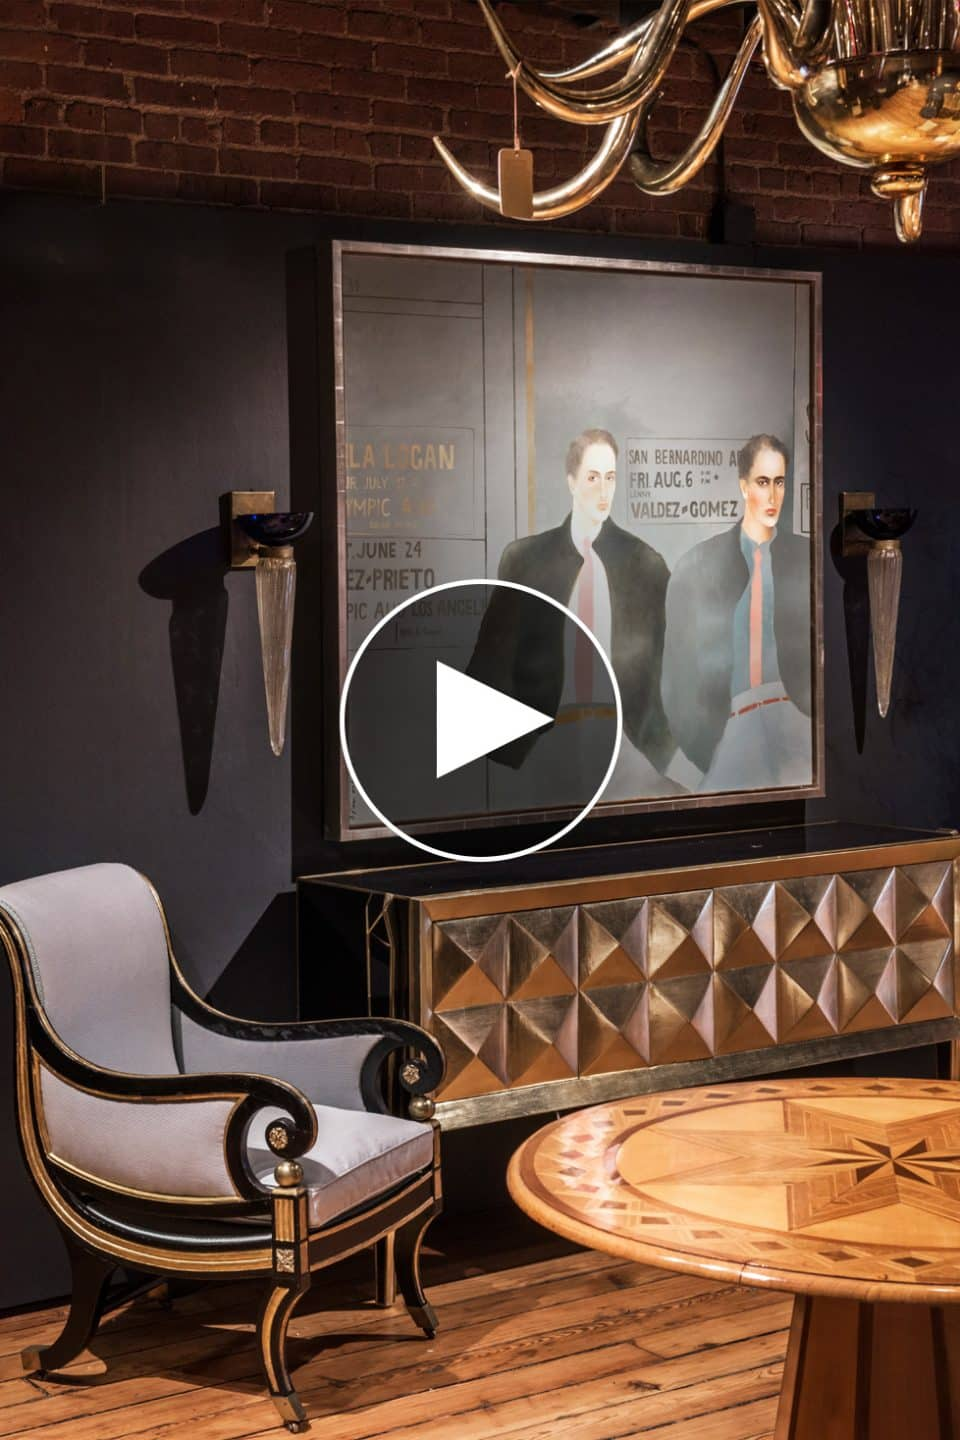 Video: Insiders Share What Makes the 1stdibs Gallery Special